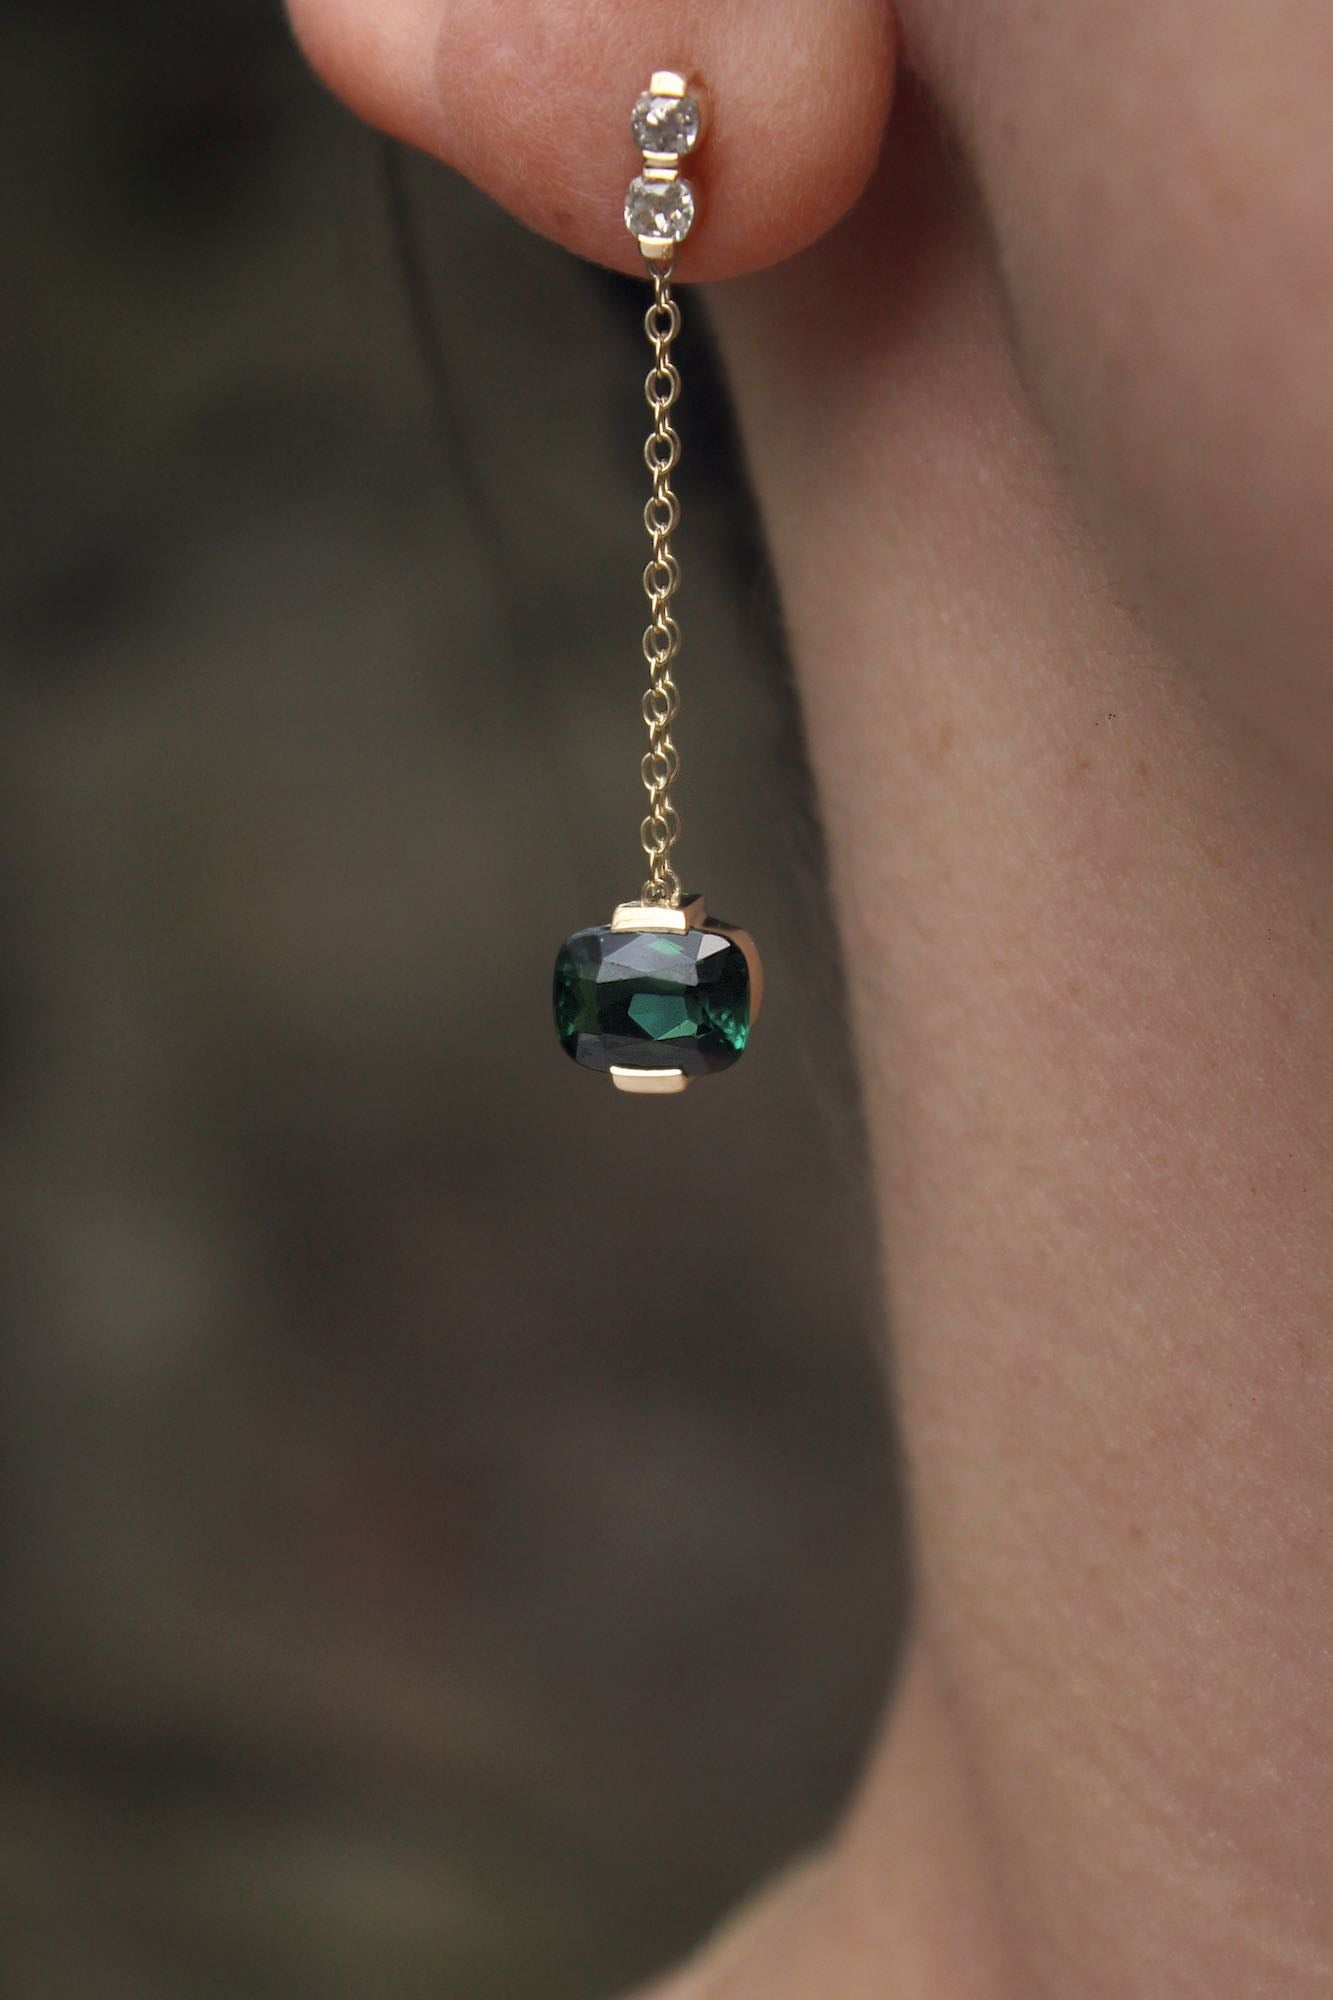 Moira Patience Fine Jewellery Bespoke Commission Remodelled Green Tourmaline Earrings and Pendant in Edinburgh 6